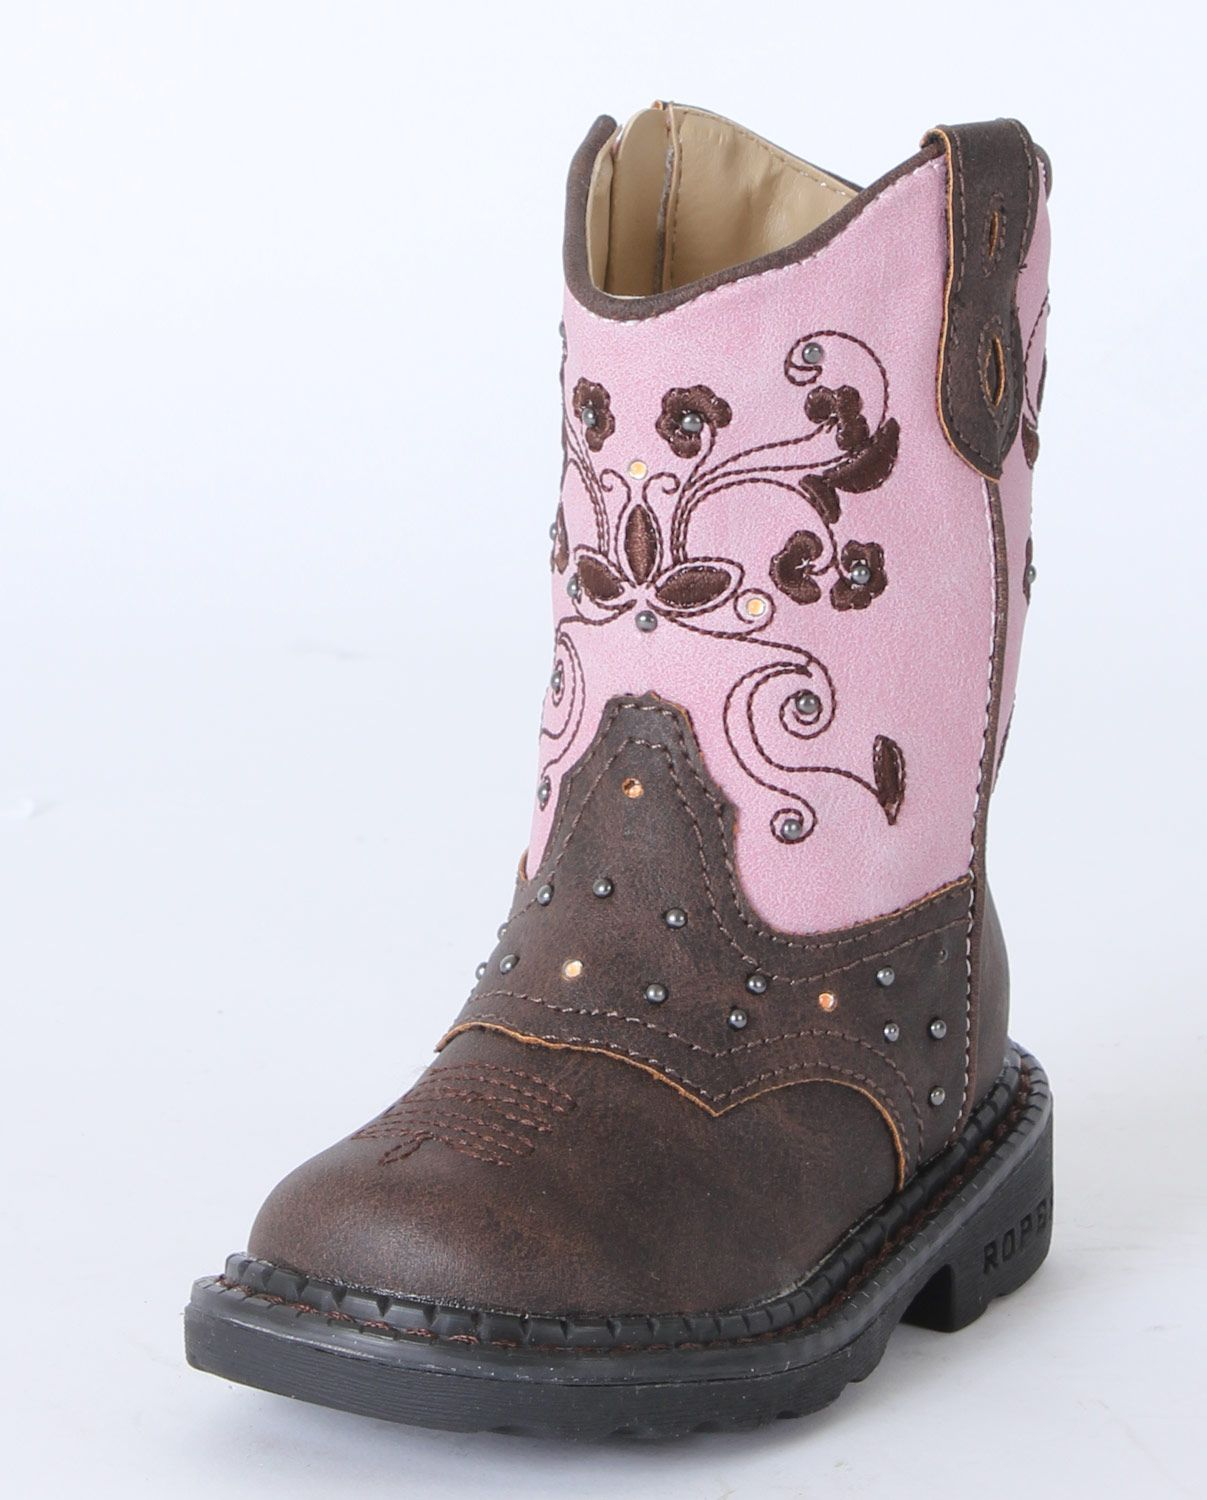 Toddler Cowgirl Boots | Fashion Boots